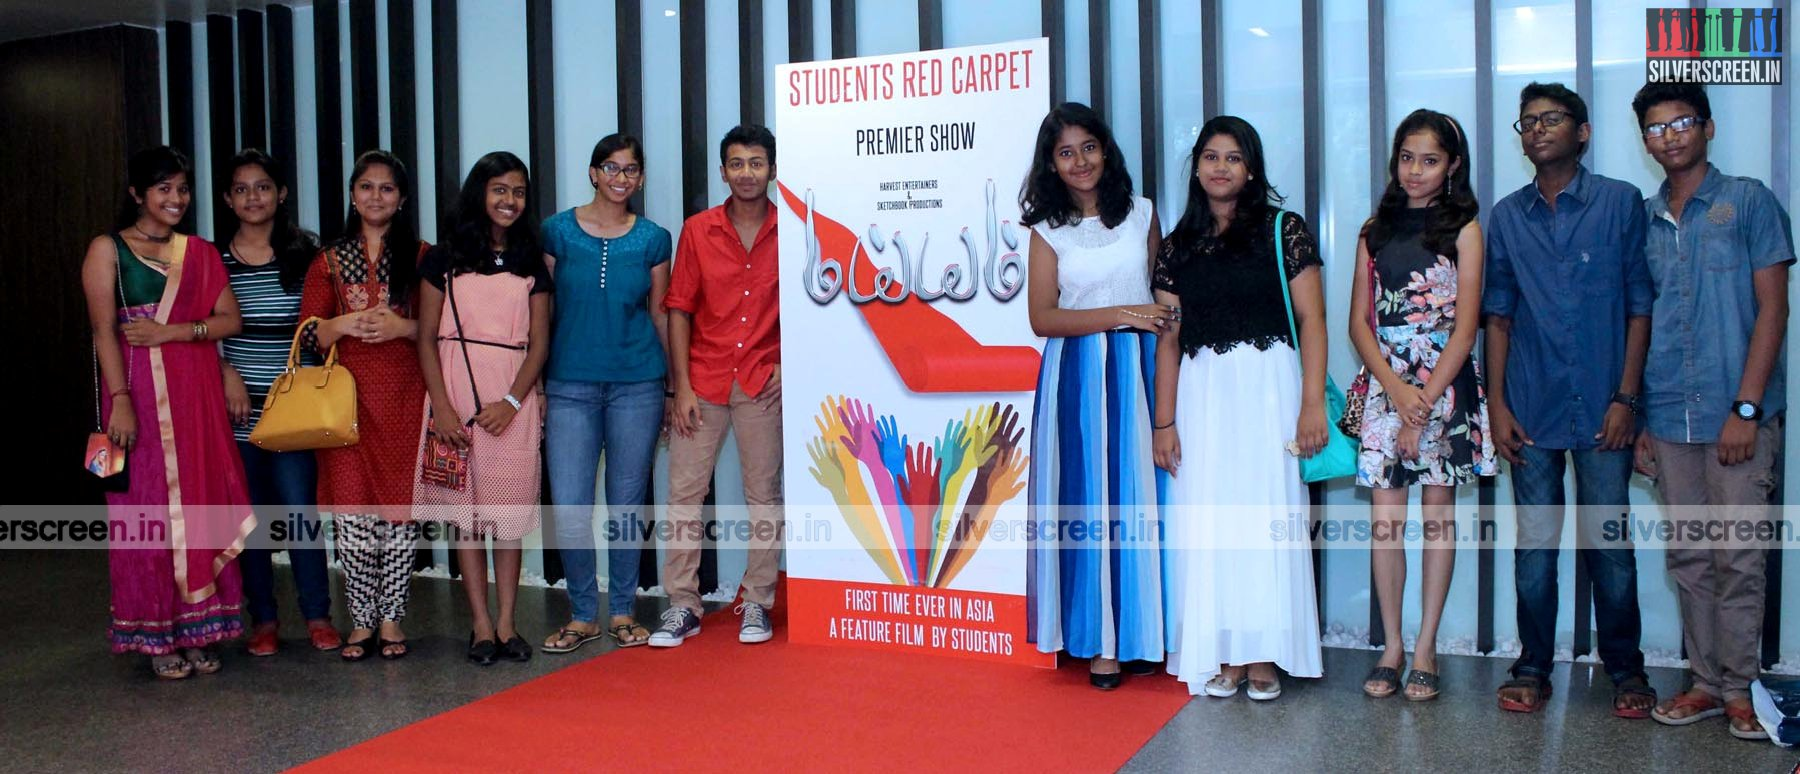 maiem students red carpet premiere photos silverscreen in